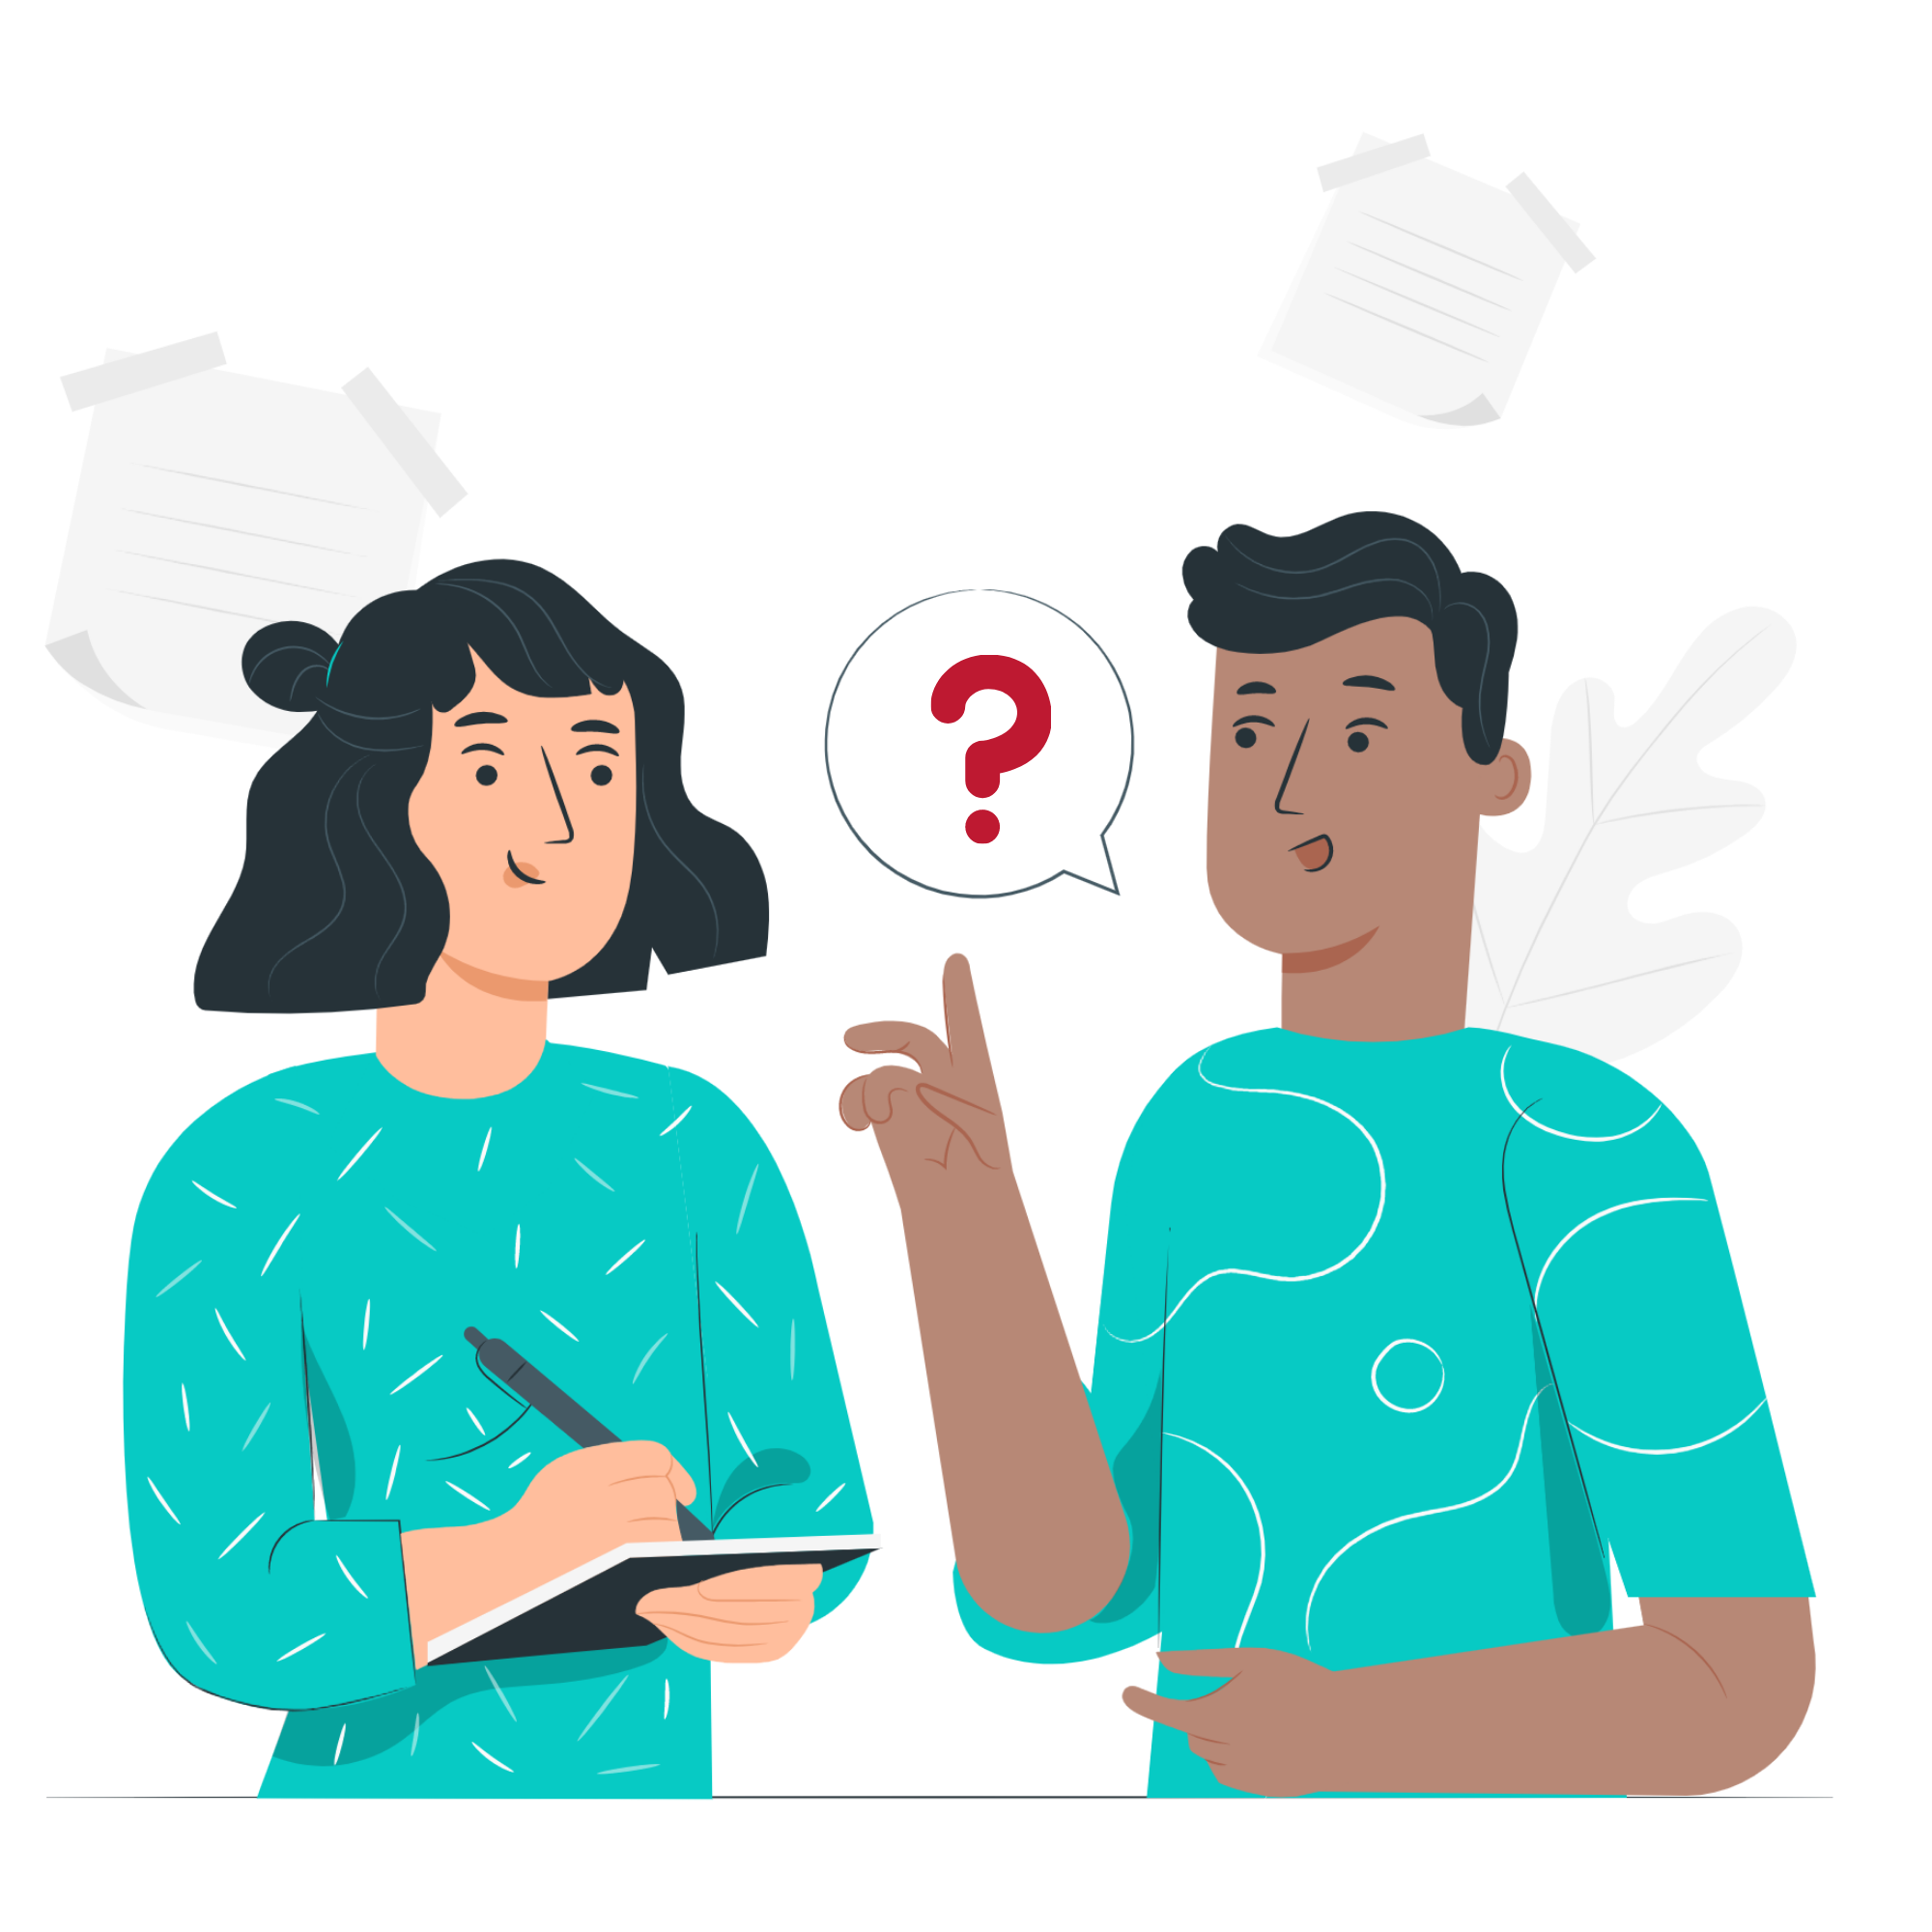 7 Reasons why you should lose the fear of frequently asking questions to your collaborators